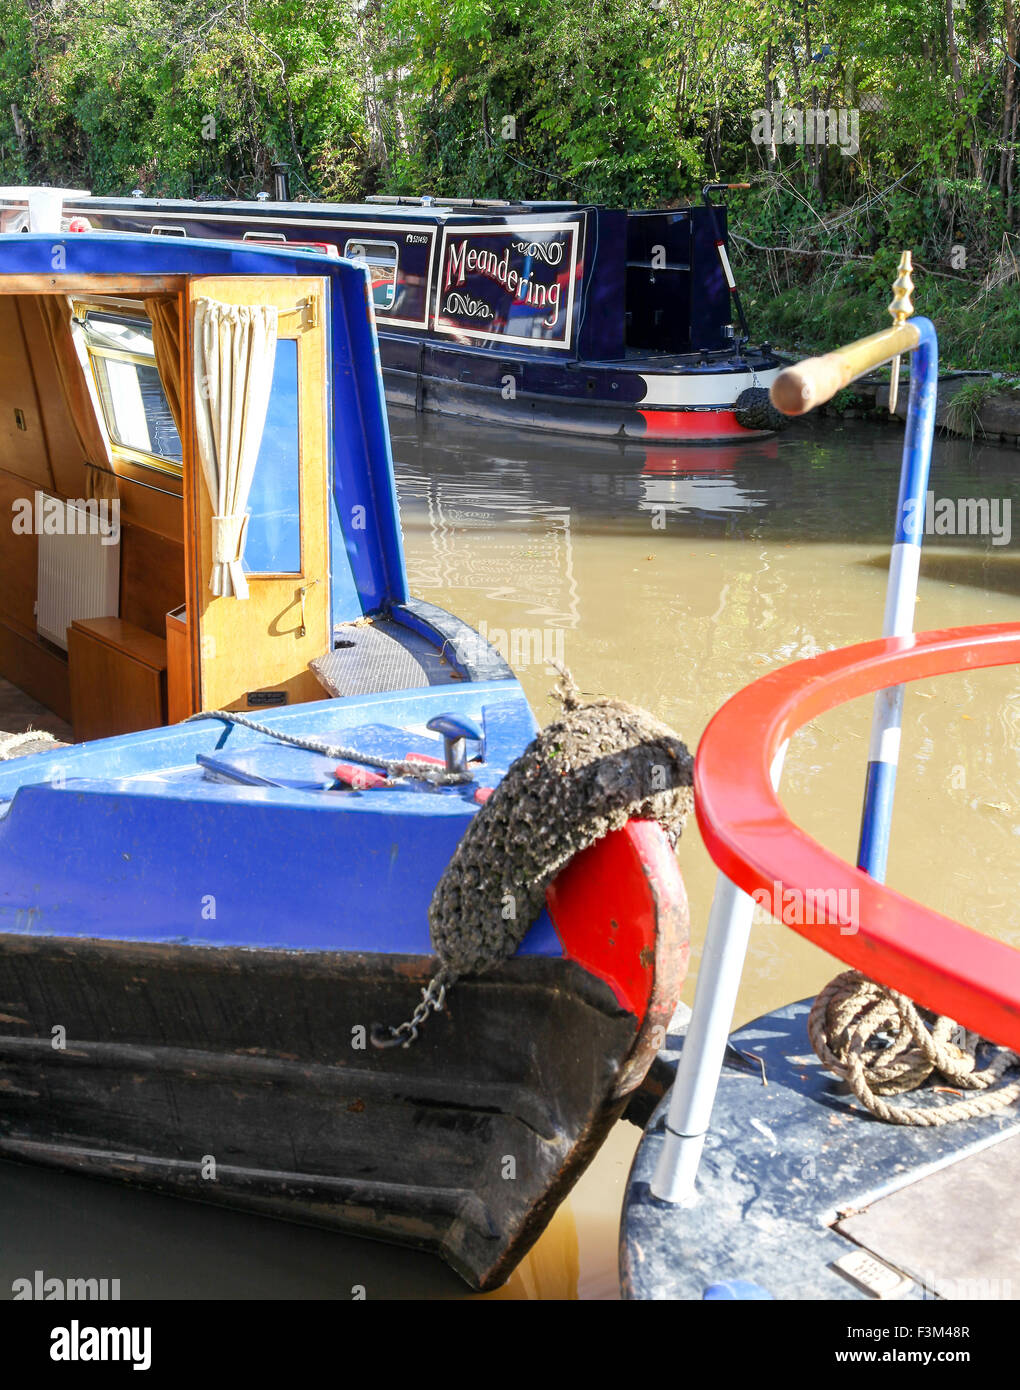 The front of two narrowboats or canal boats one named Meandering on the Shropshire Union Canal at Middlewich Cheshire - Stock Image